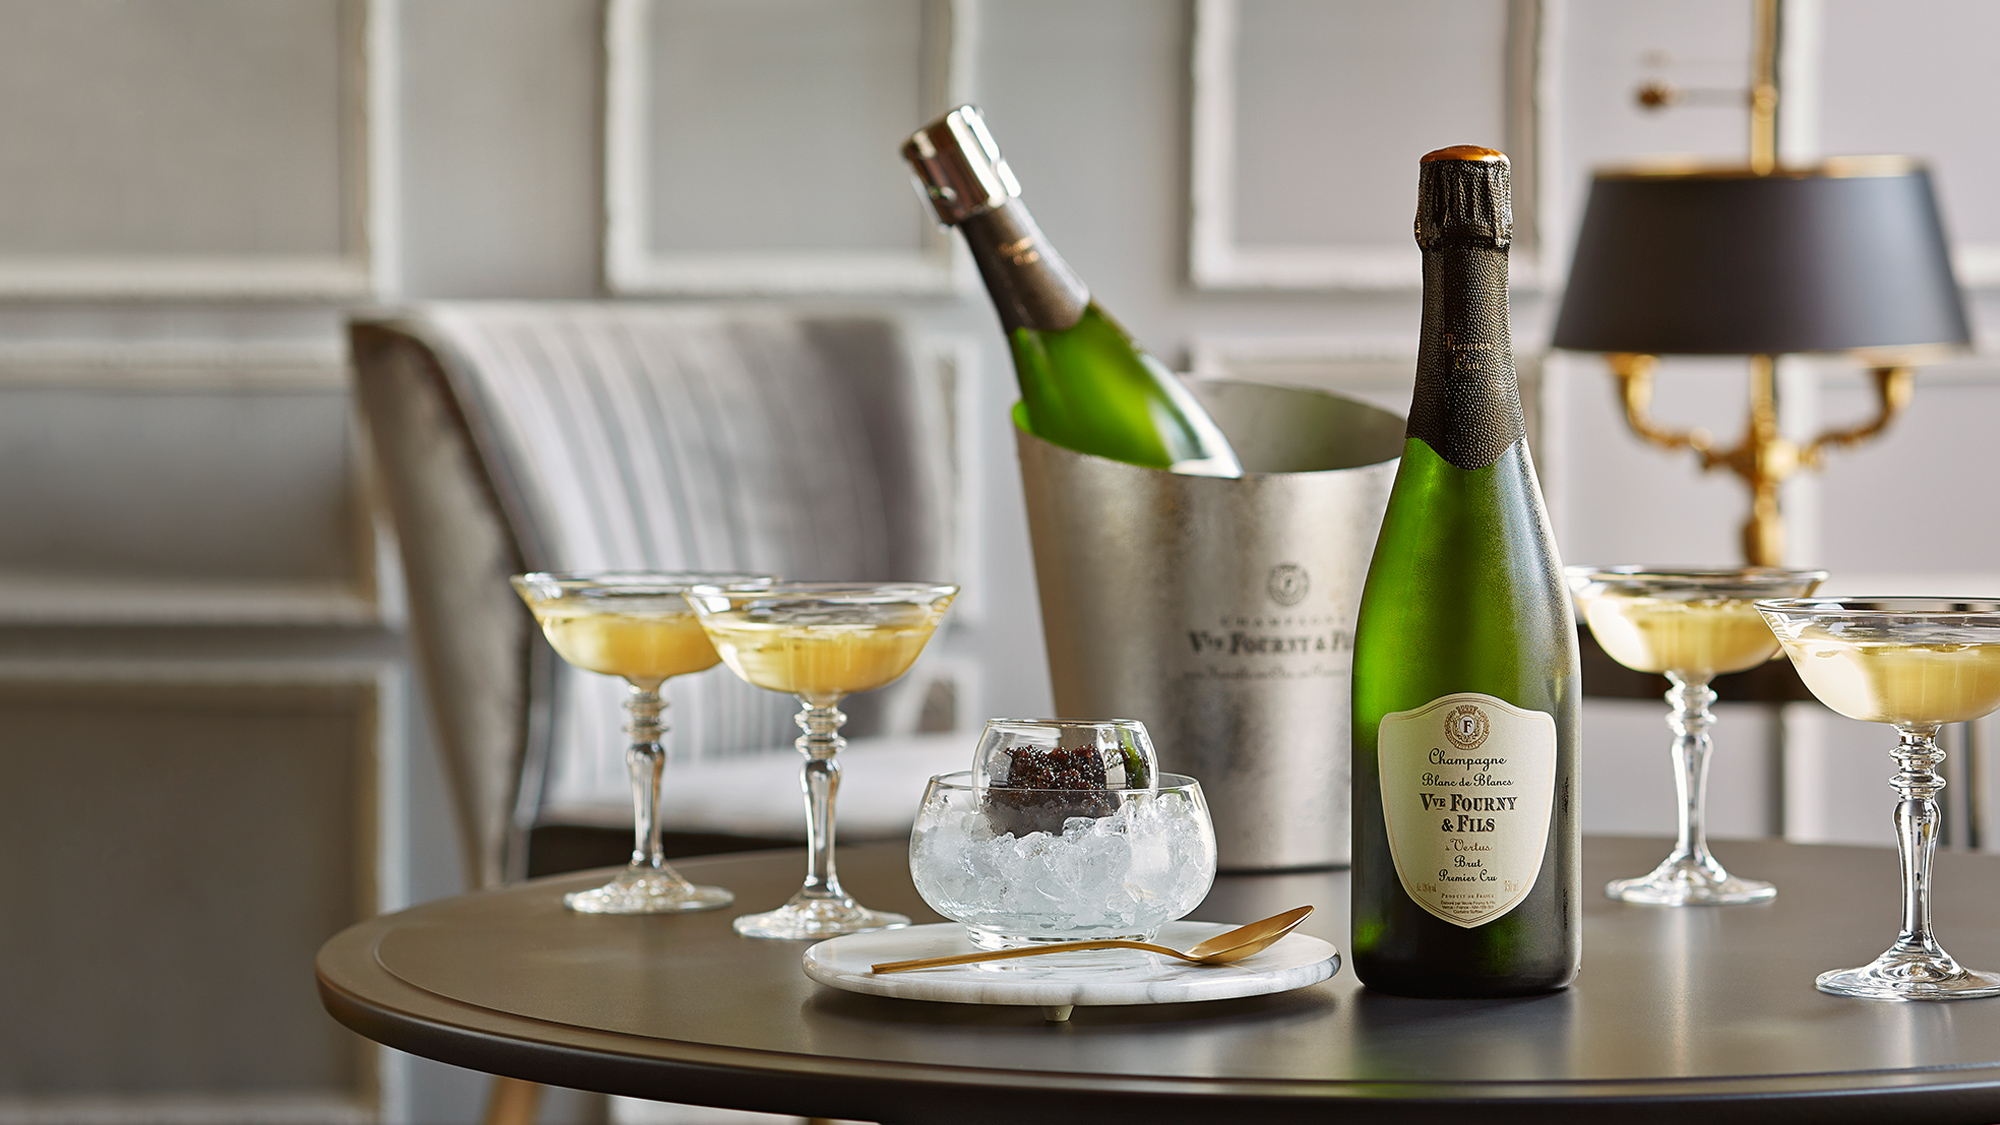 Decadent Veuve Fourny and Fils Champagne with Caviar